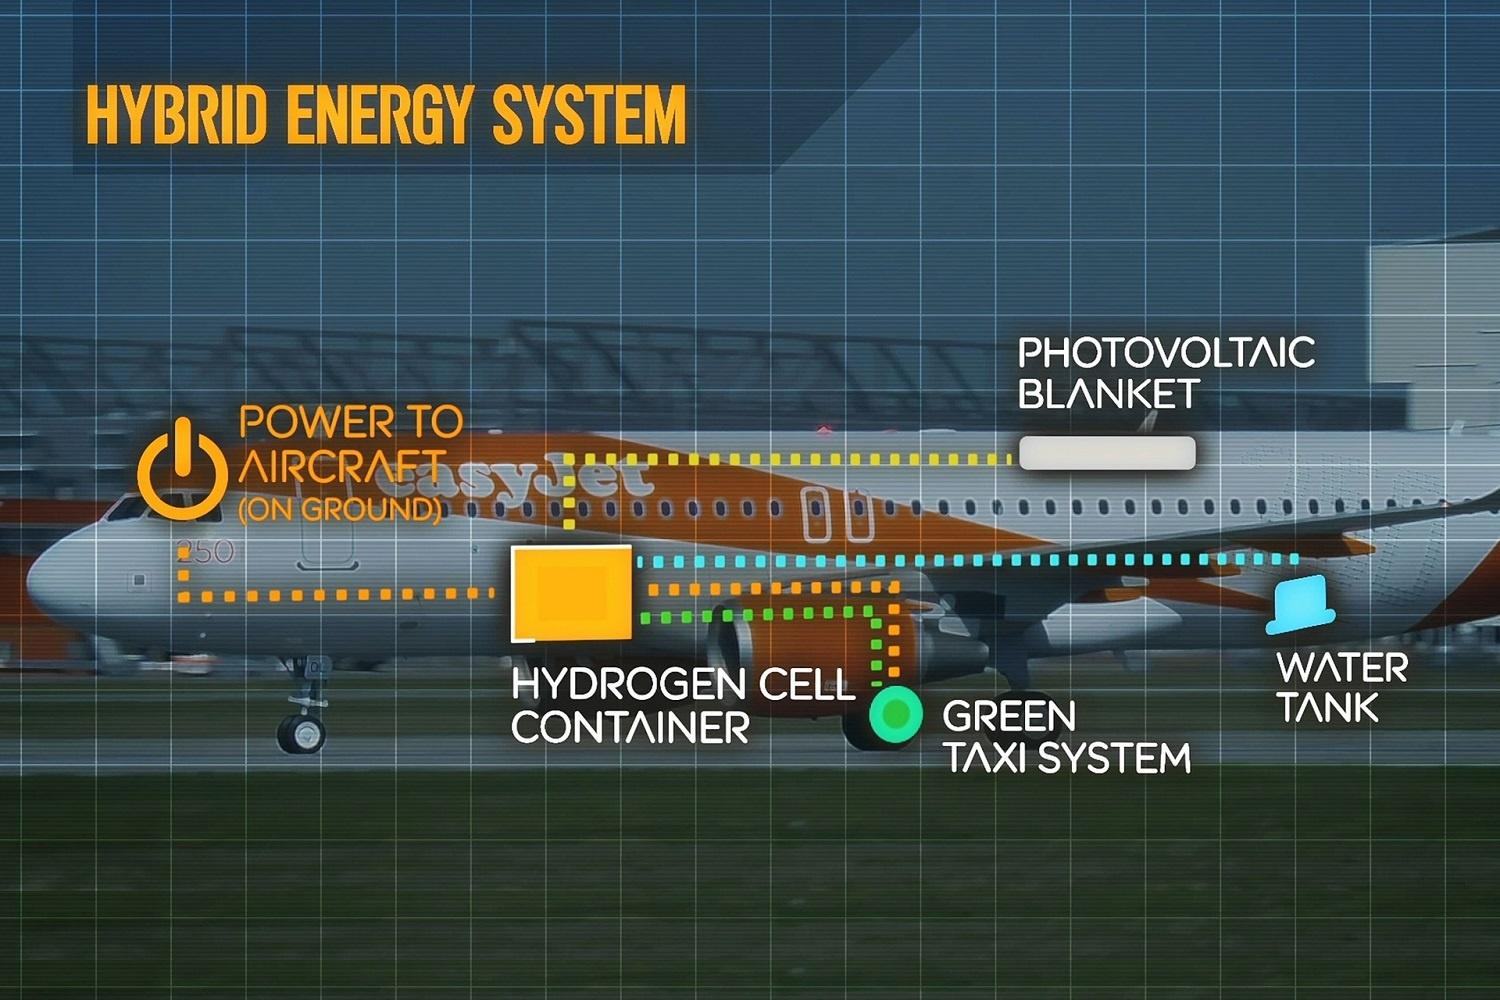 EasyJet can save 50,000 tons of CO2 annually with a hydrogen-hybrid plane